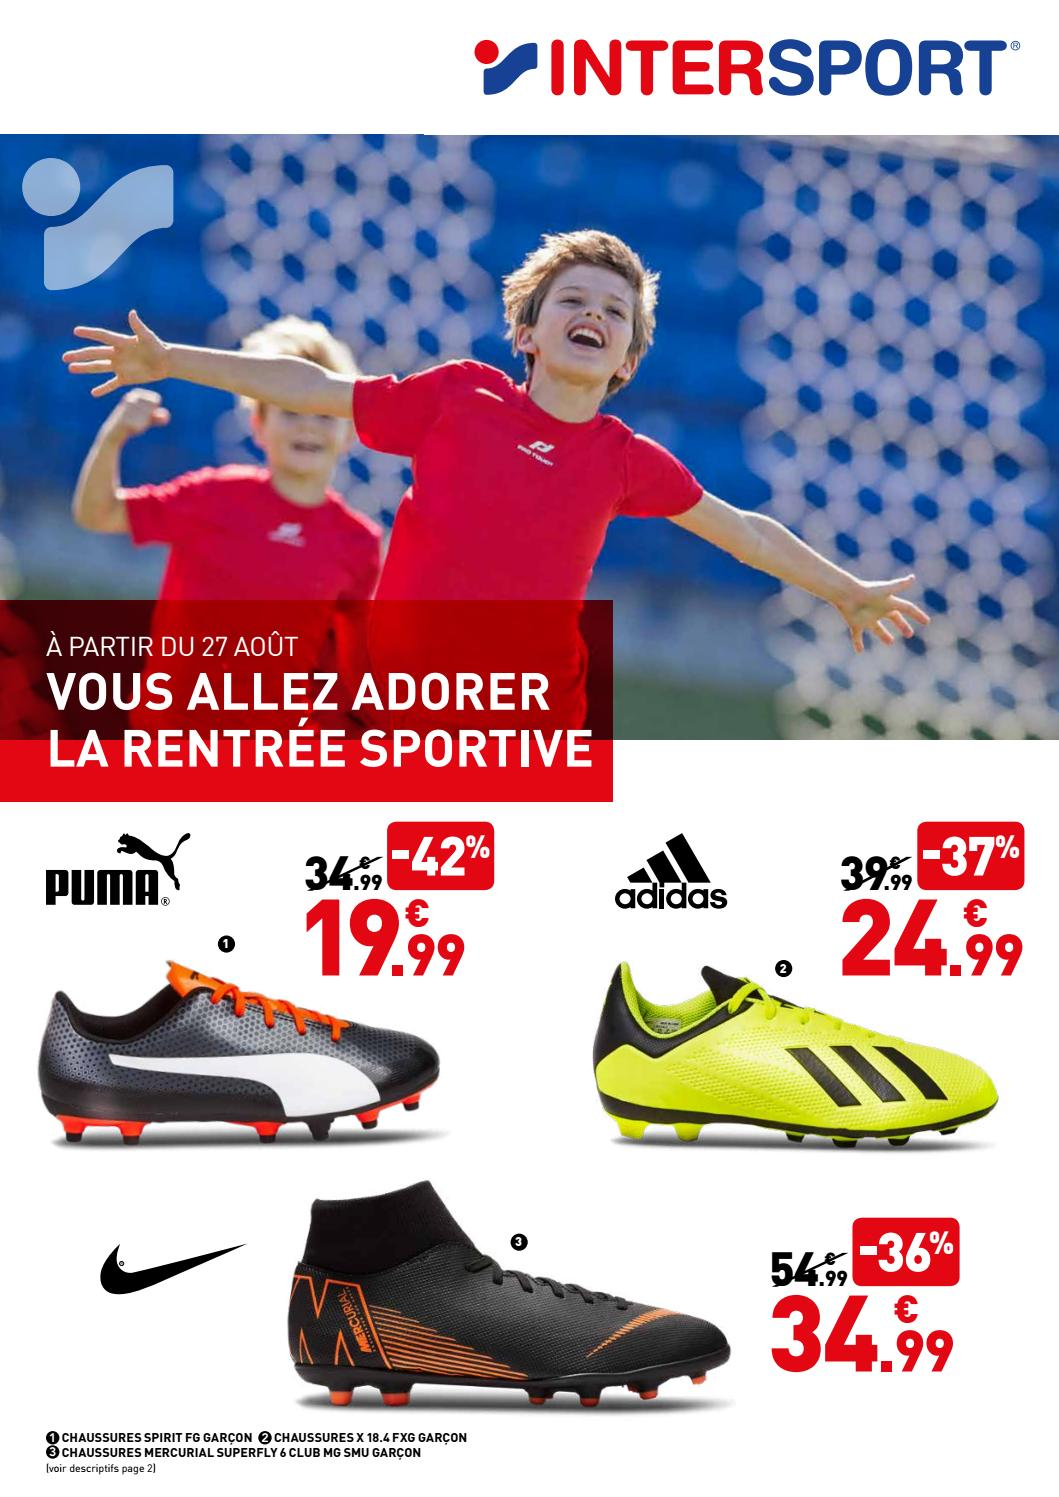 Mons Issuu Intersport Belgium Mons Belgium Intersport Issuu By Intersport By YzHwz